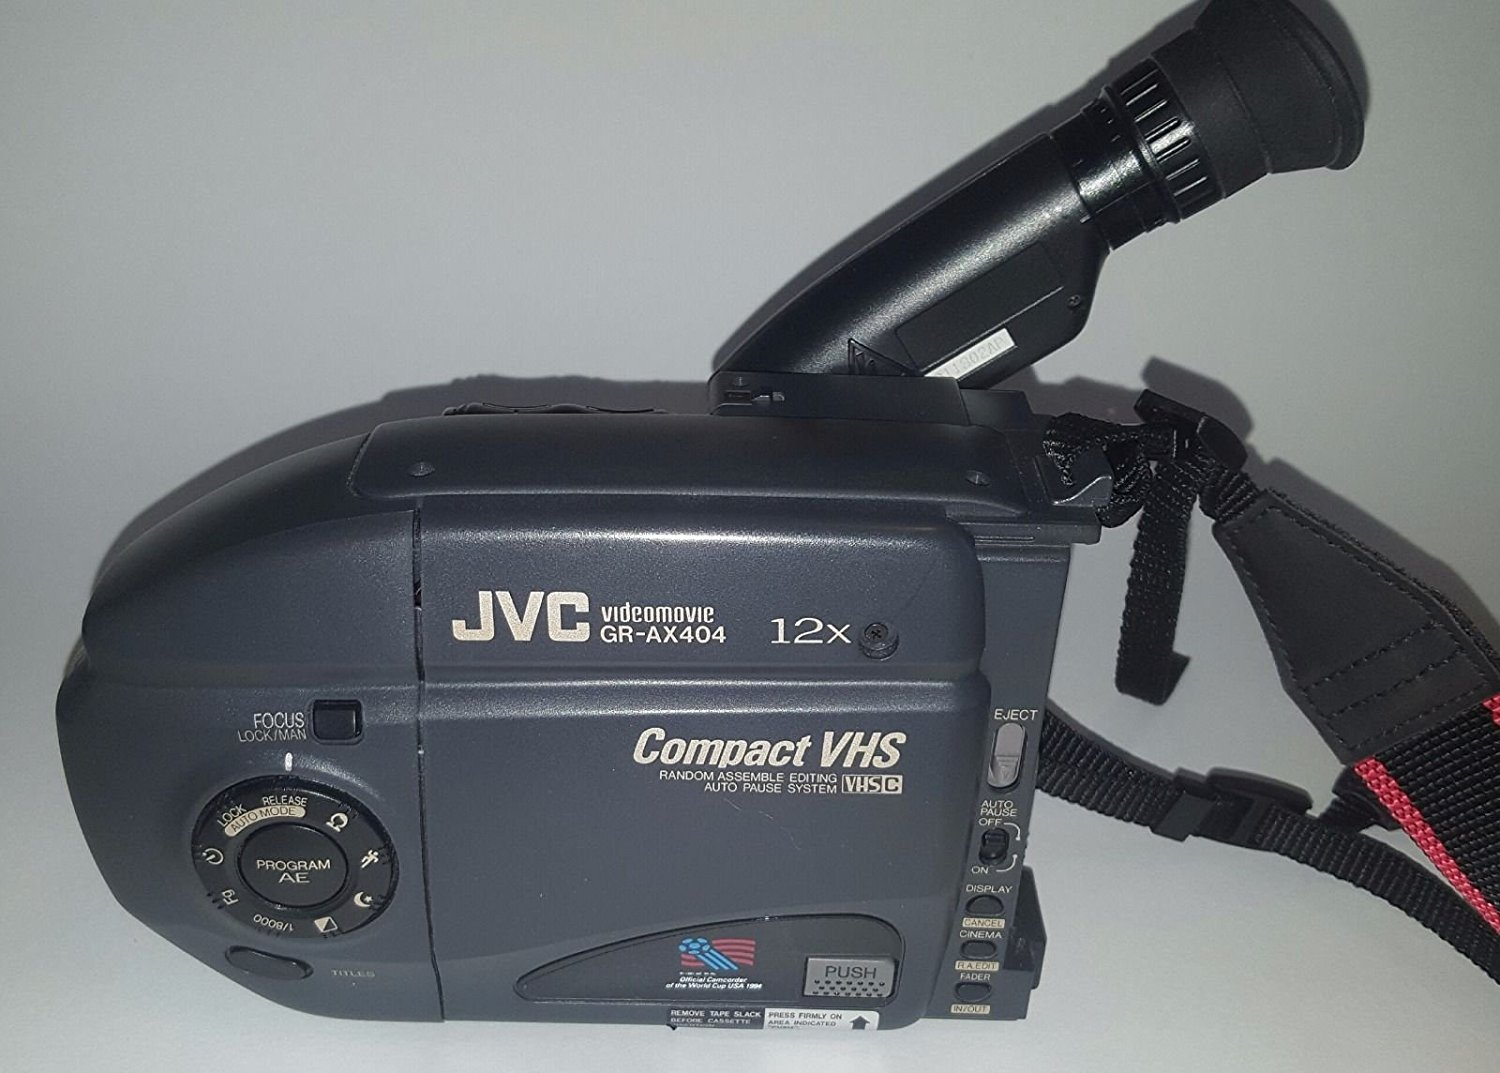 JVC Camcorder Model GR-AX404 Compact VHS-C